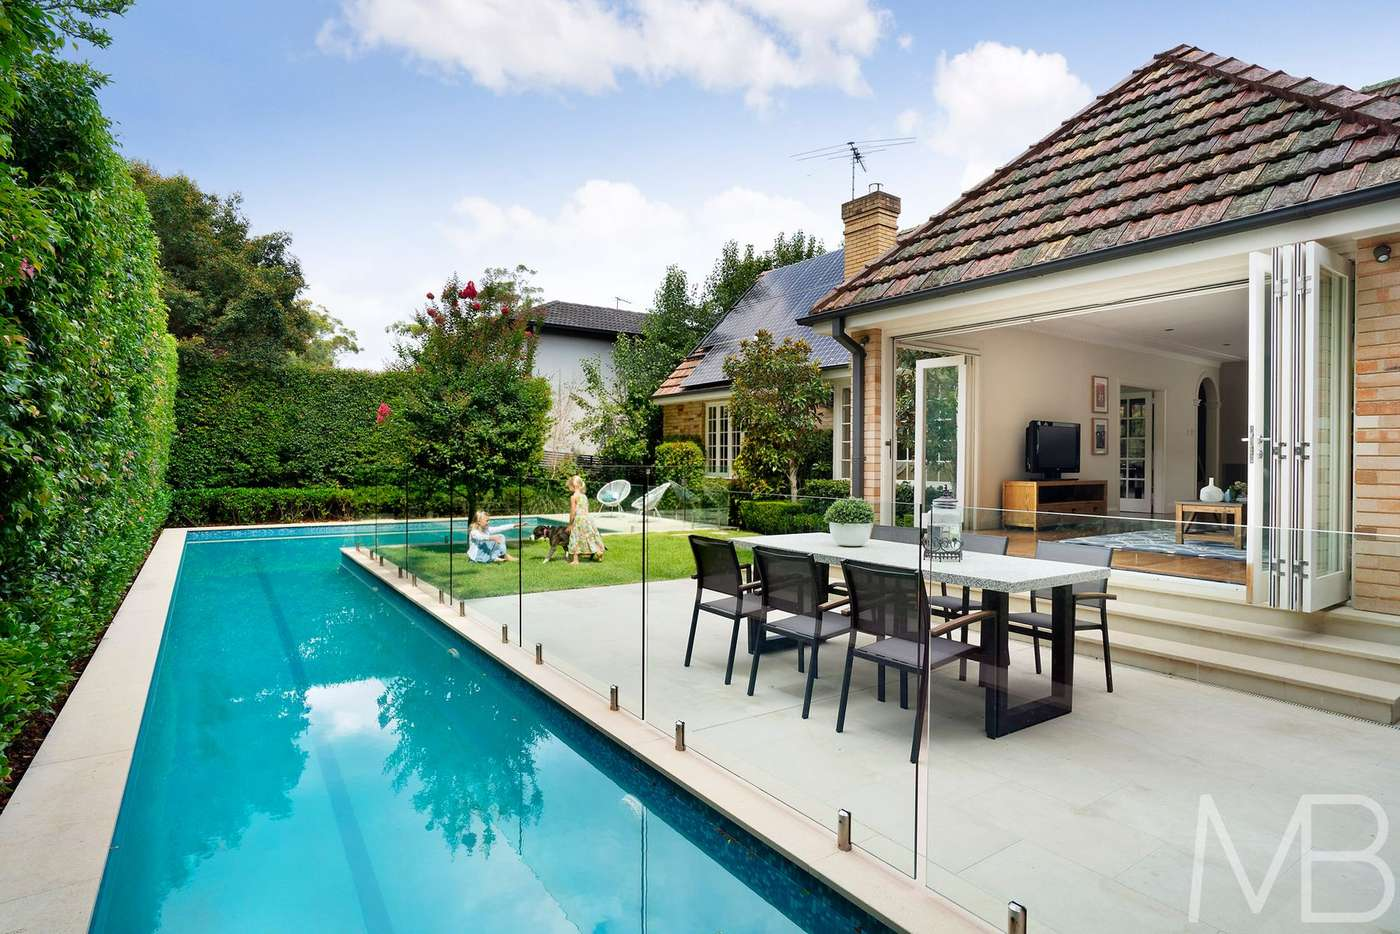 Main view of Homely house listing, 135 Pentecost Avenue, Turramurra NSW 2074